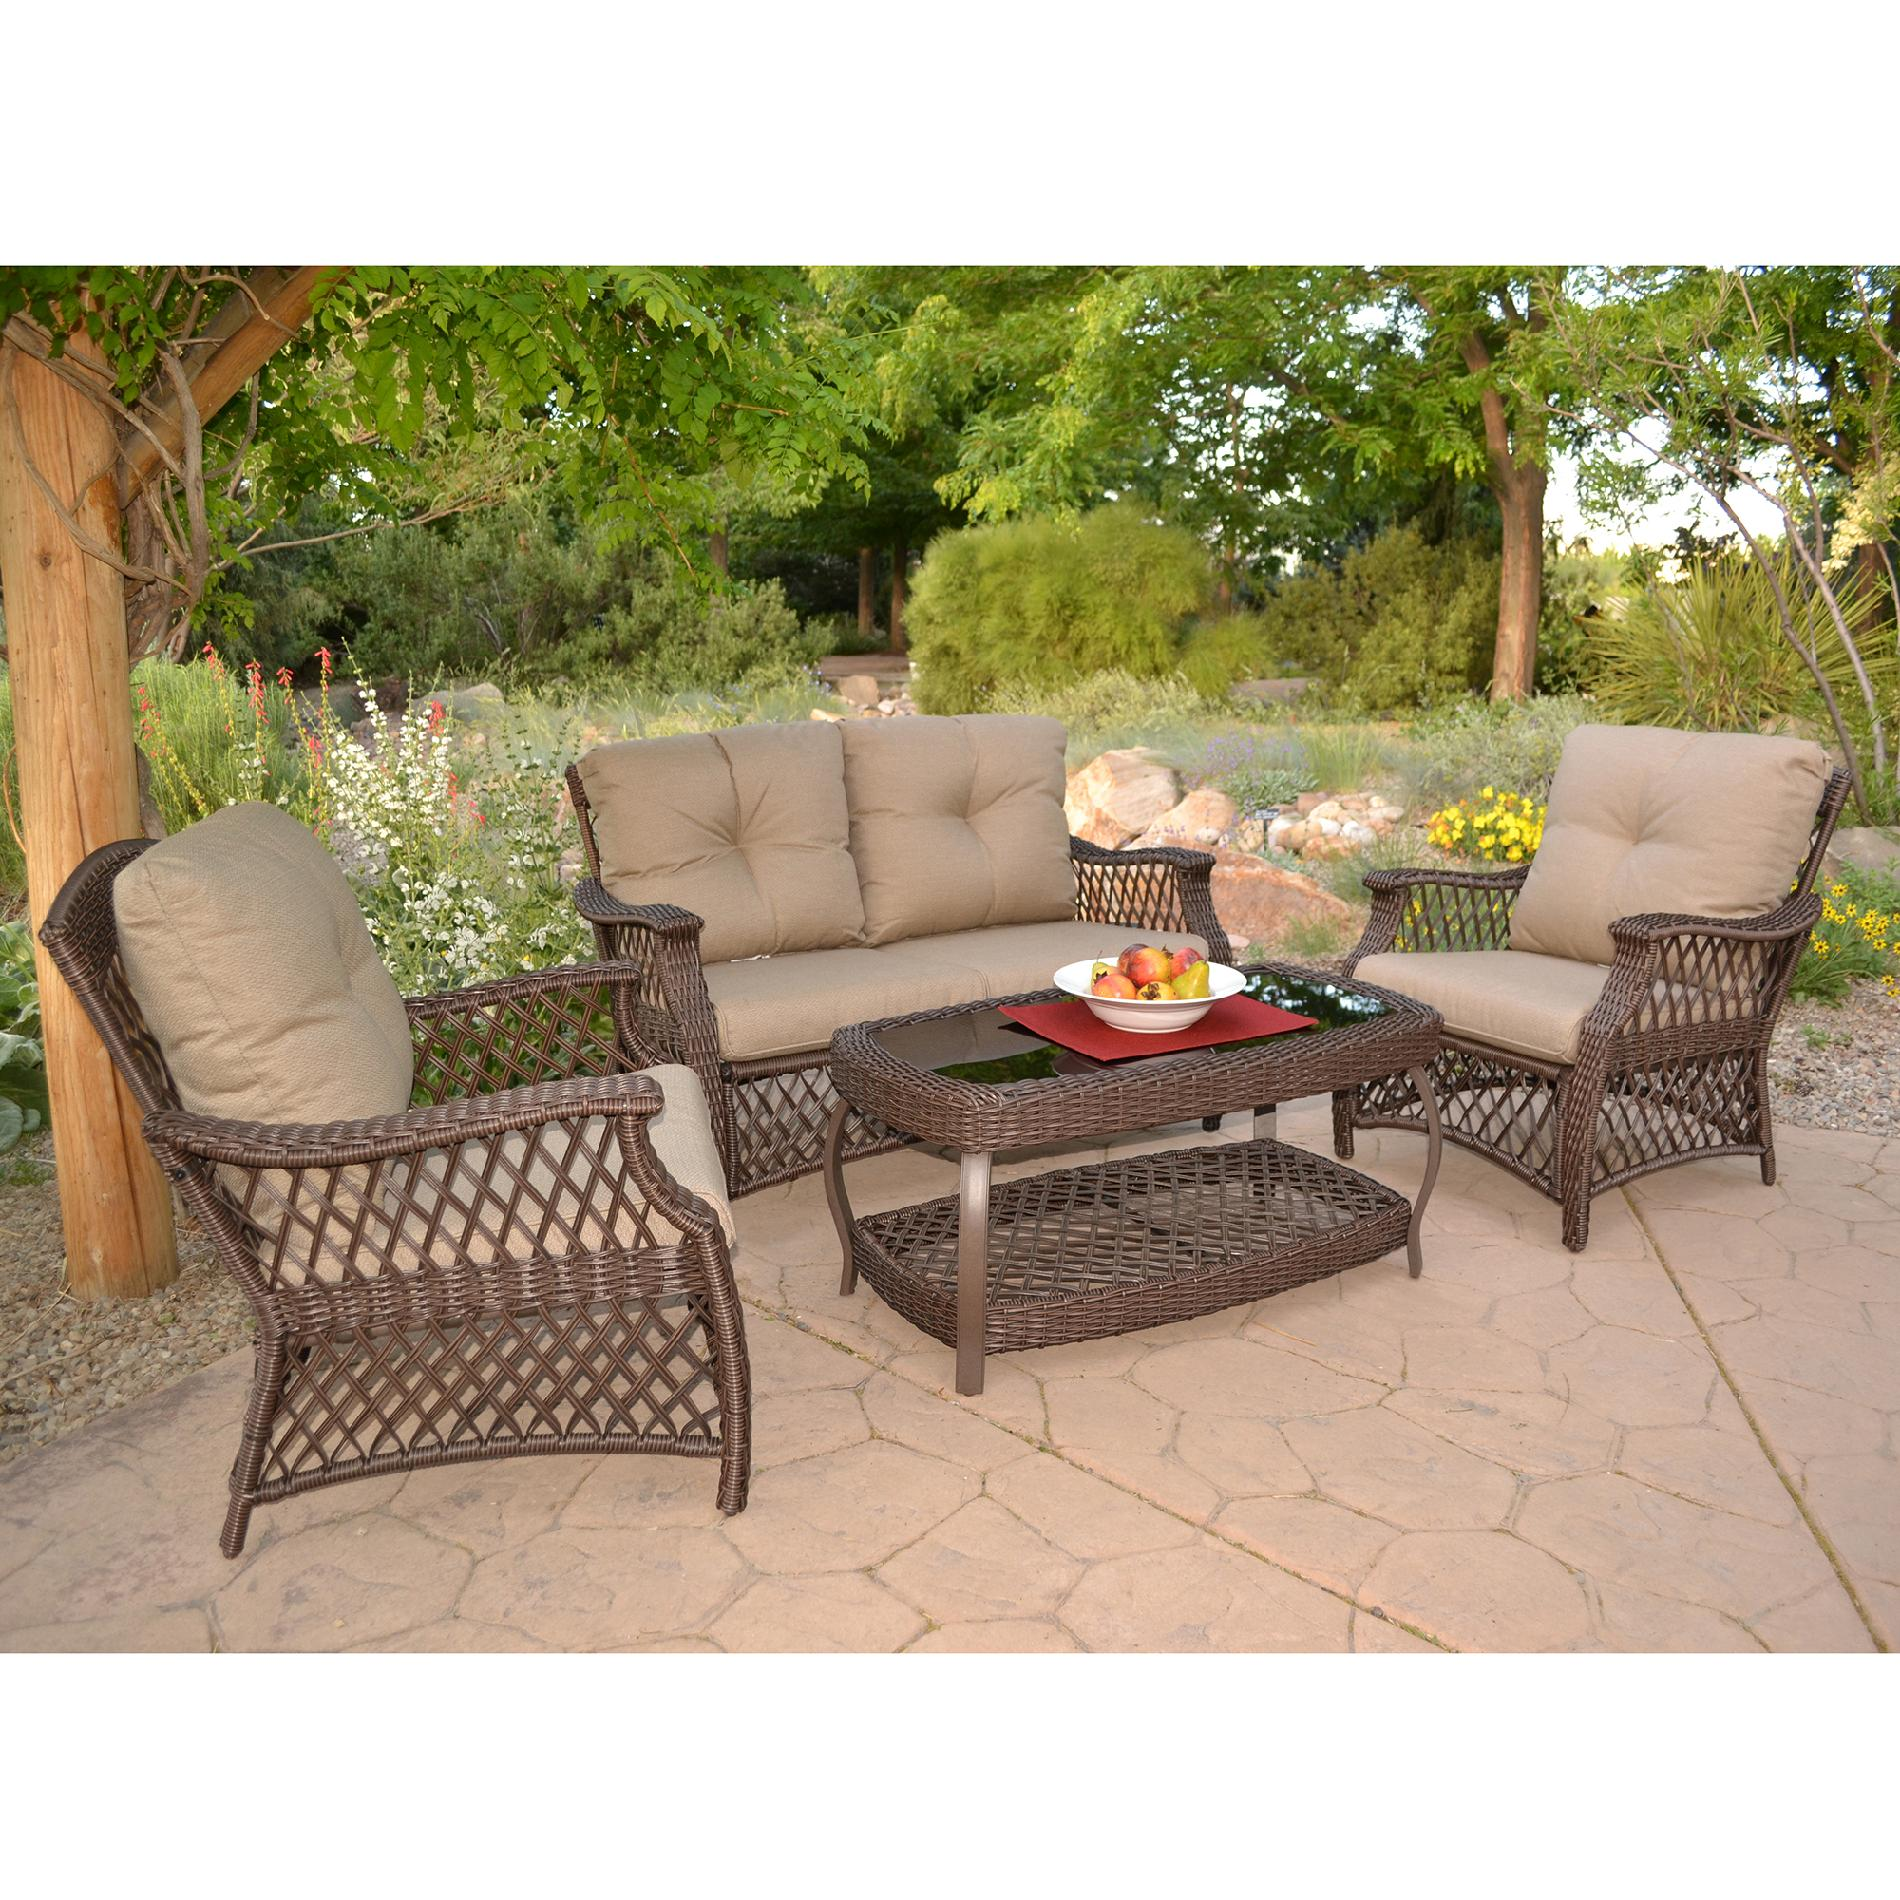 Outdoor Conversation Sets Patio Furniture